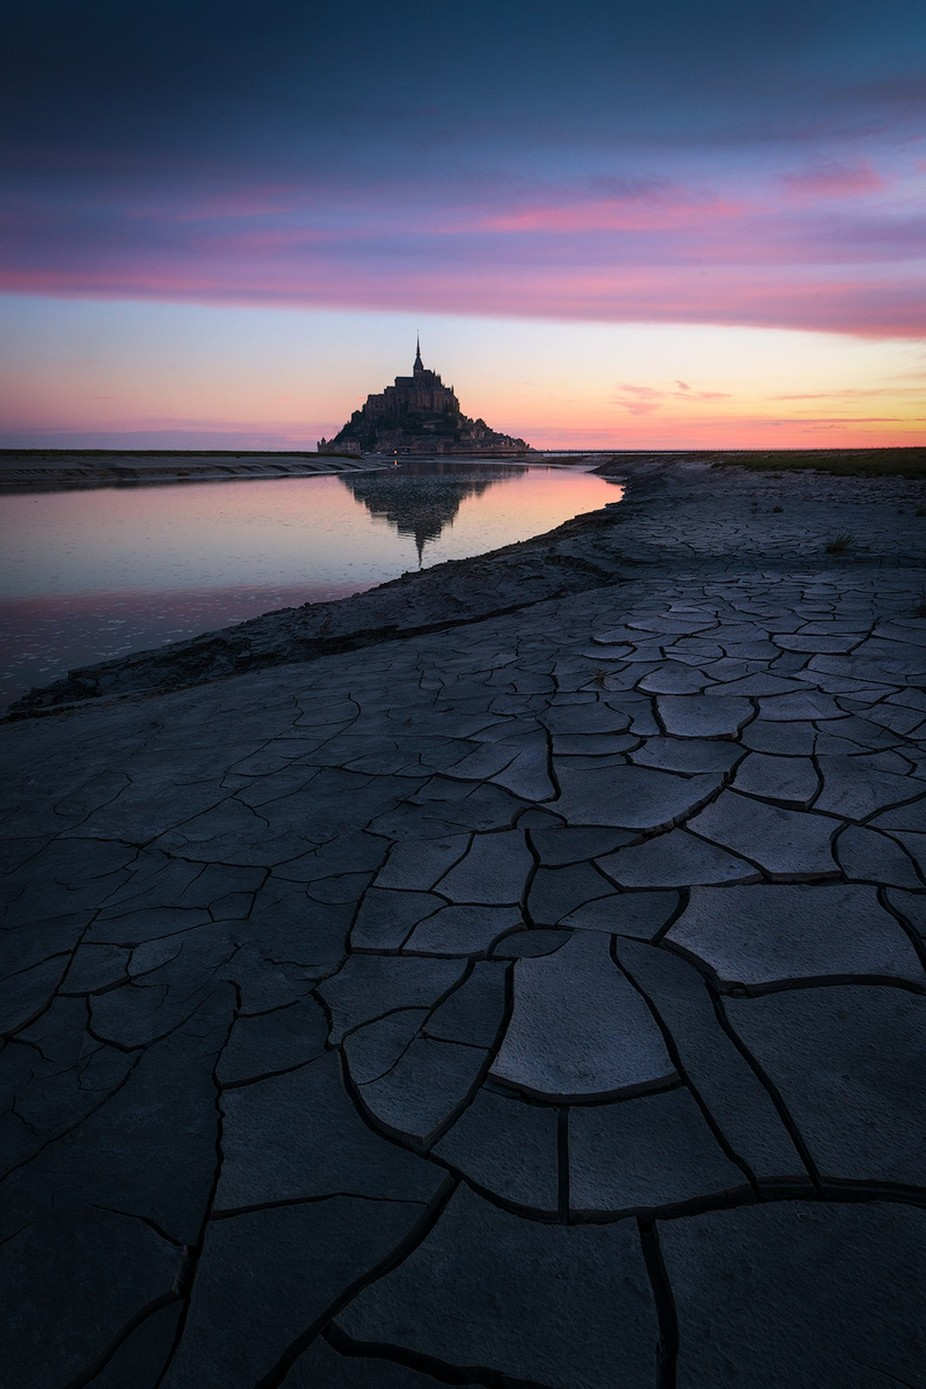 Pink sunrise in Mont Saint-Michel by mathieurivrin - Image Of The Month Photo Contest Vol 26